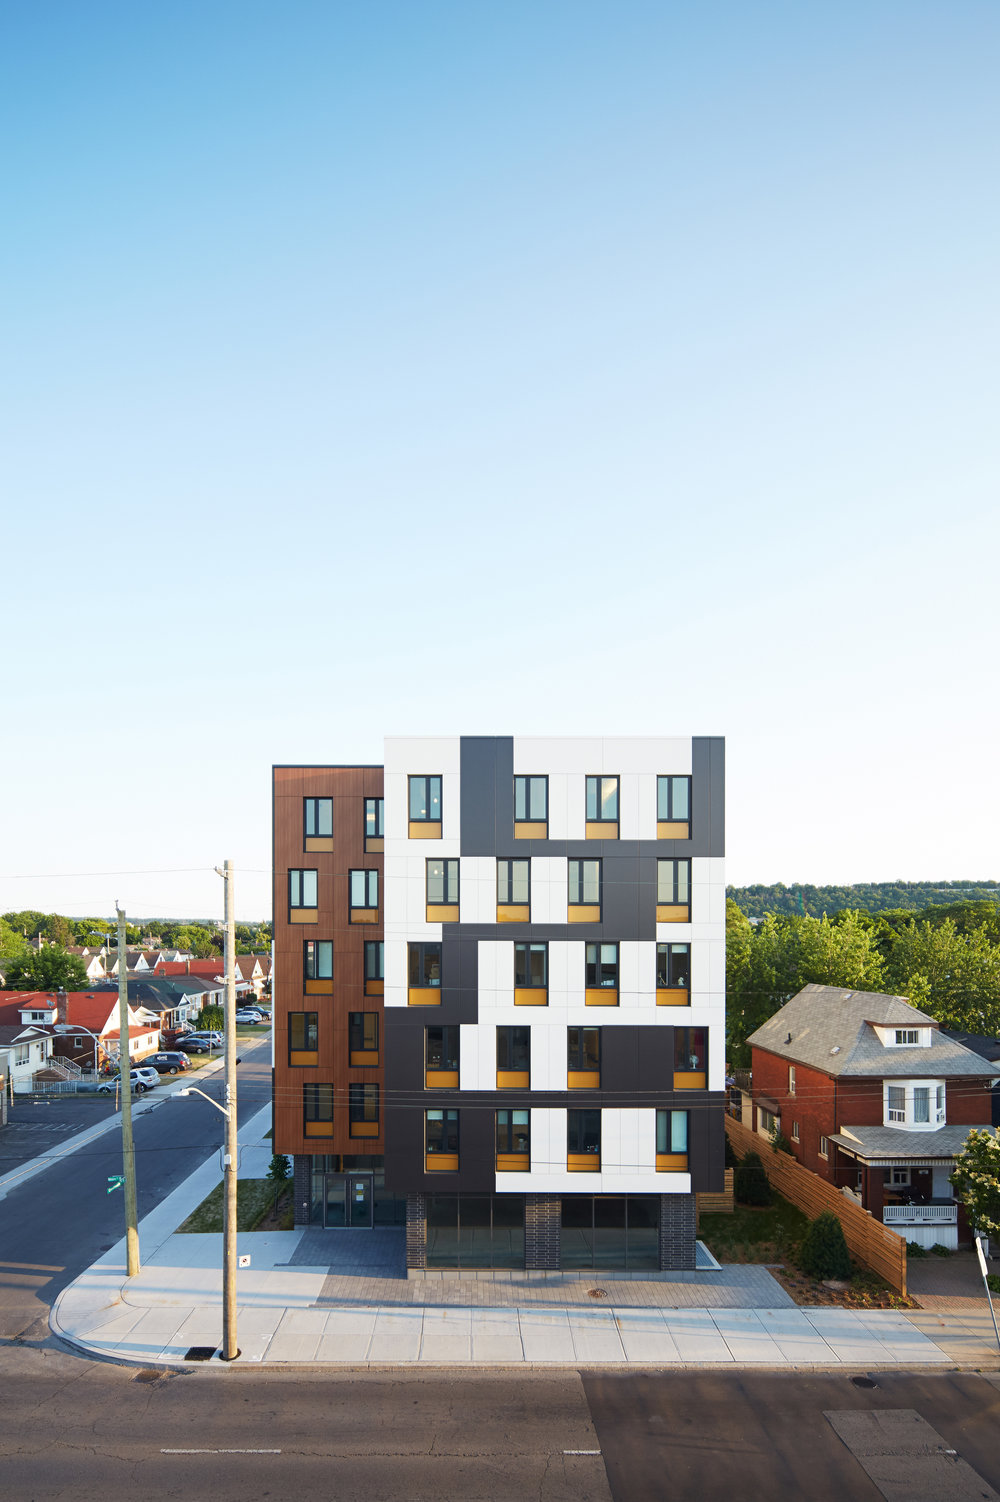 - The Commons is a unique social enterprise innovated by Indwell, an innovator in affordable housing.